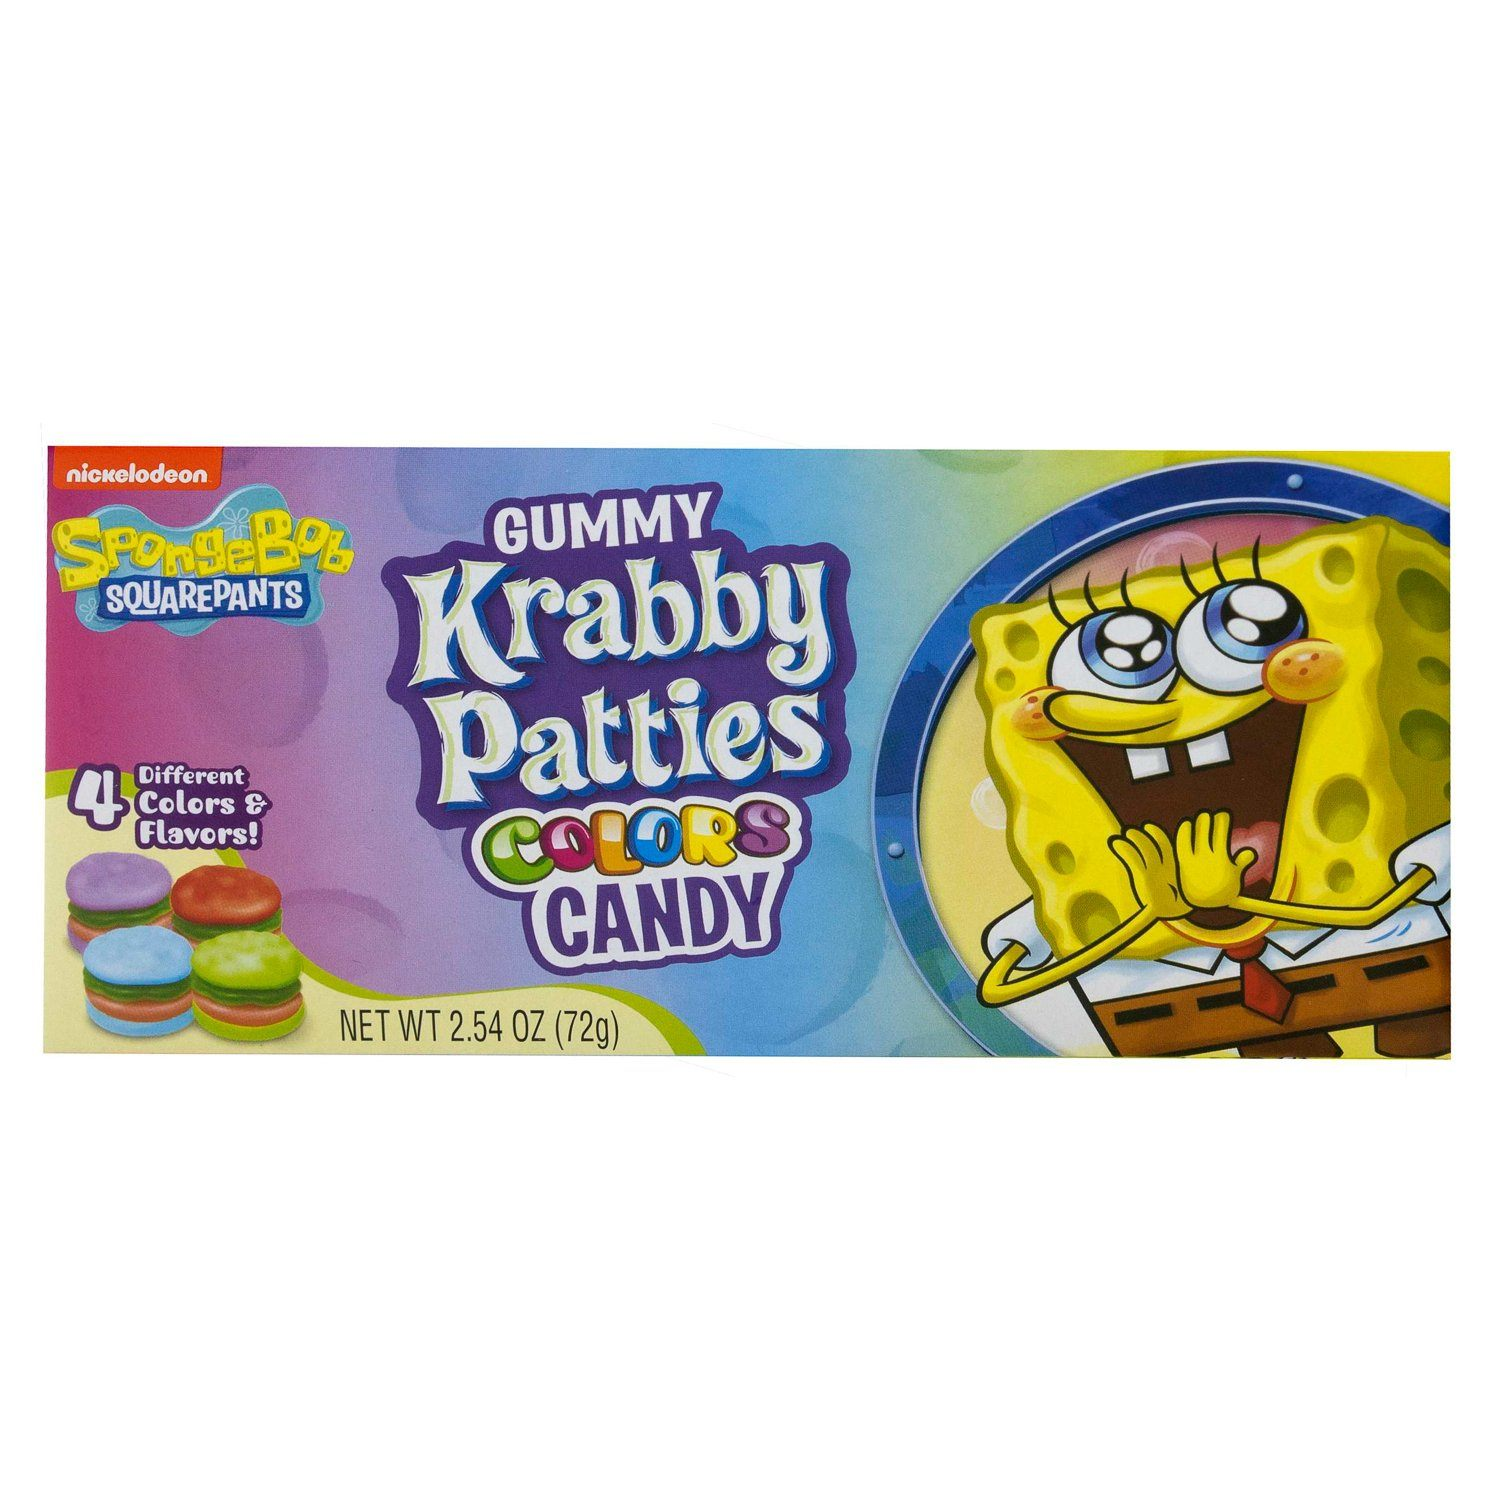 SpongeBob SquarePants Gummy Krabby Patties Candies Frankford Candy Colors Theater Box - 2.54 Ounce